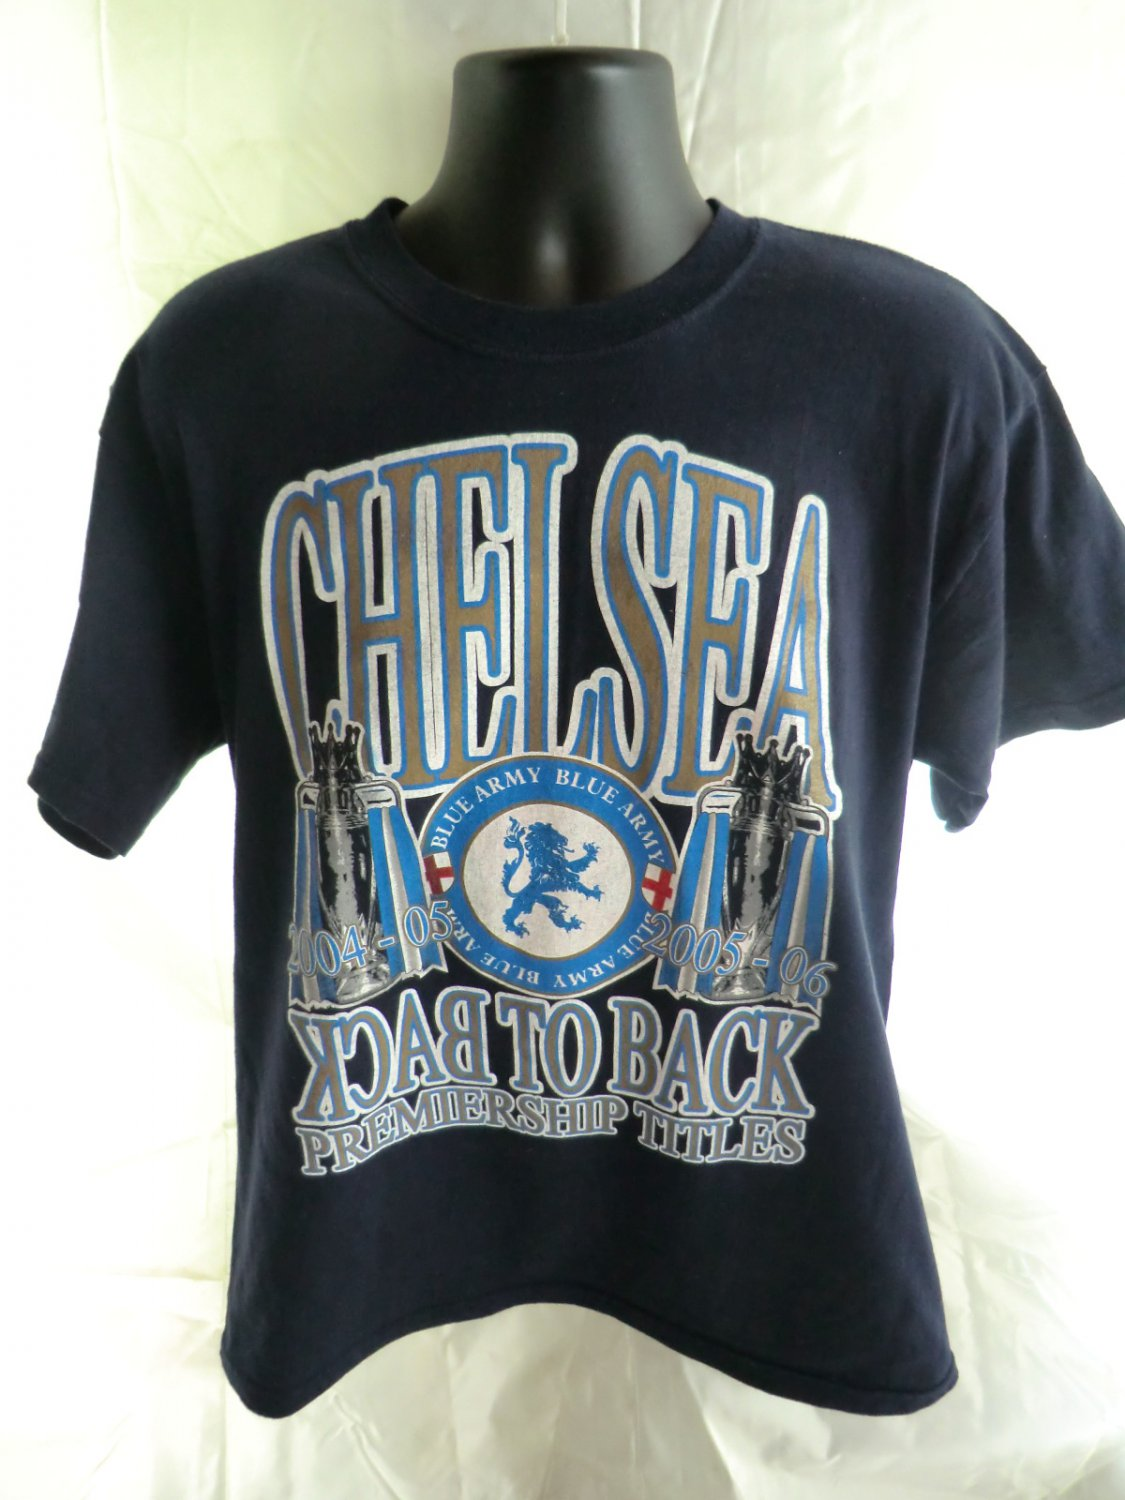 SOLD! CHELSEA UK BLUE ARMY Size Large T-Shirt BACK to BACK Titles